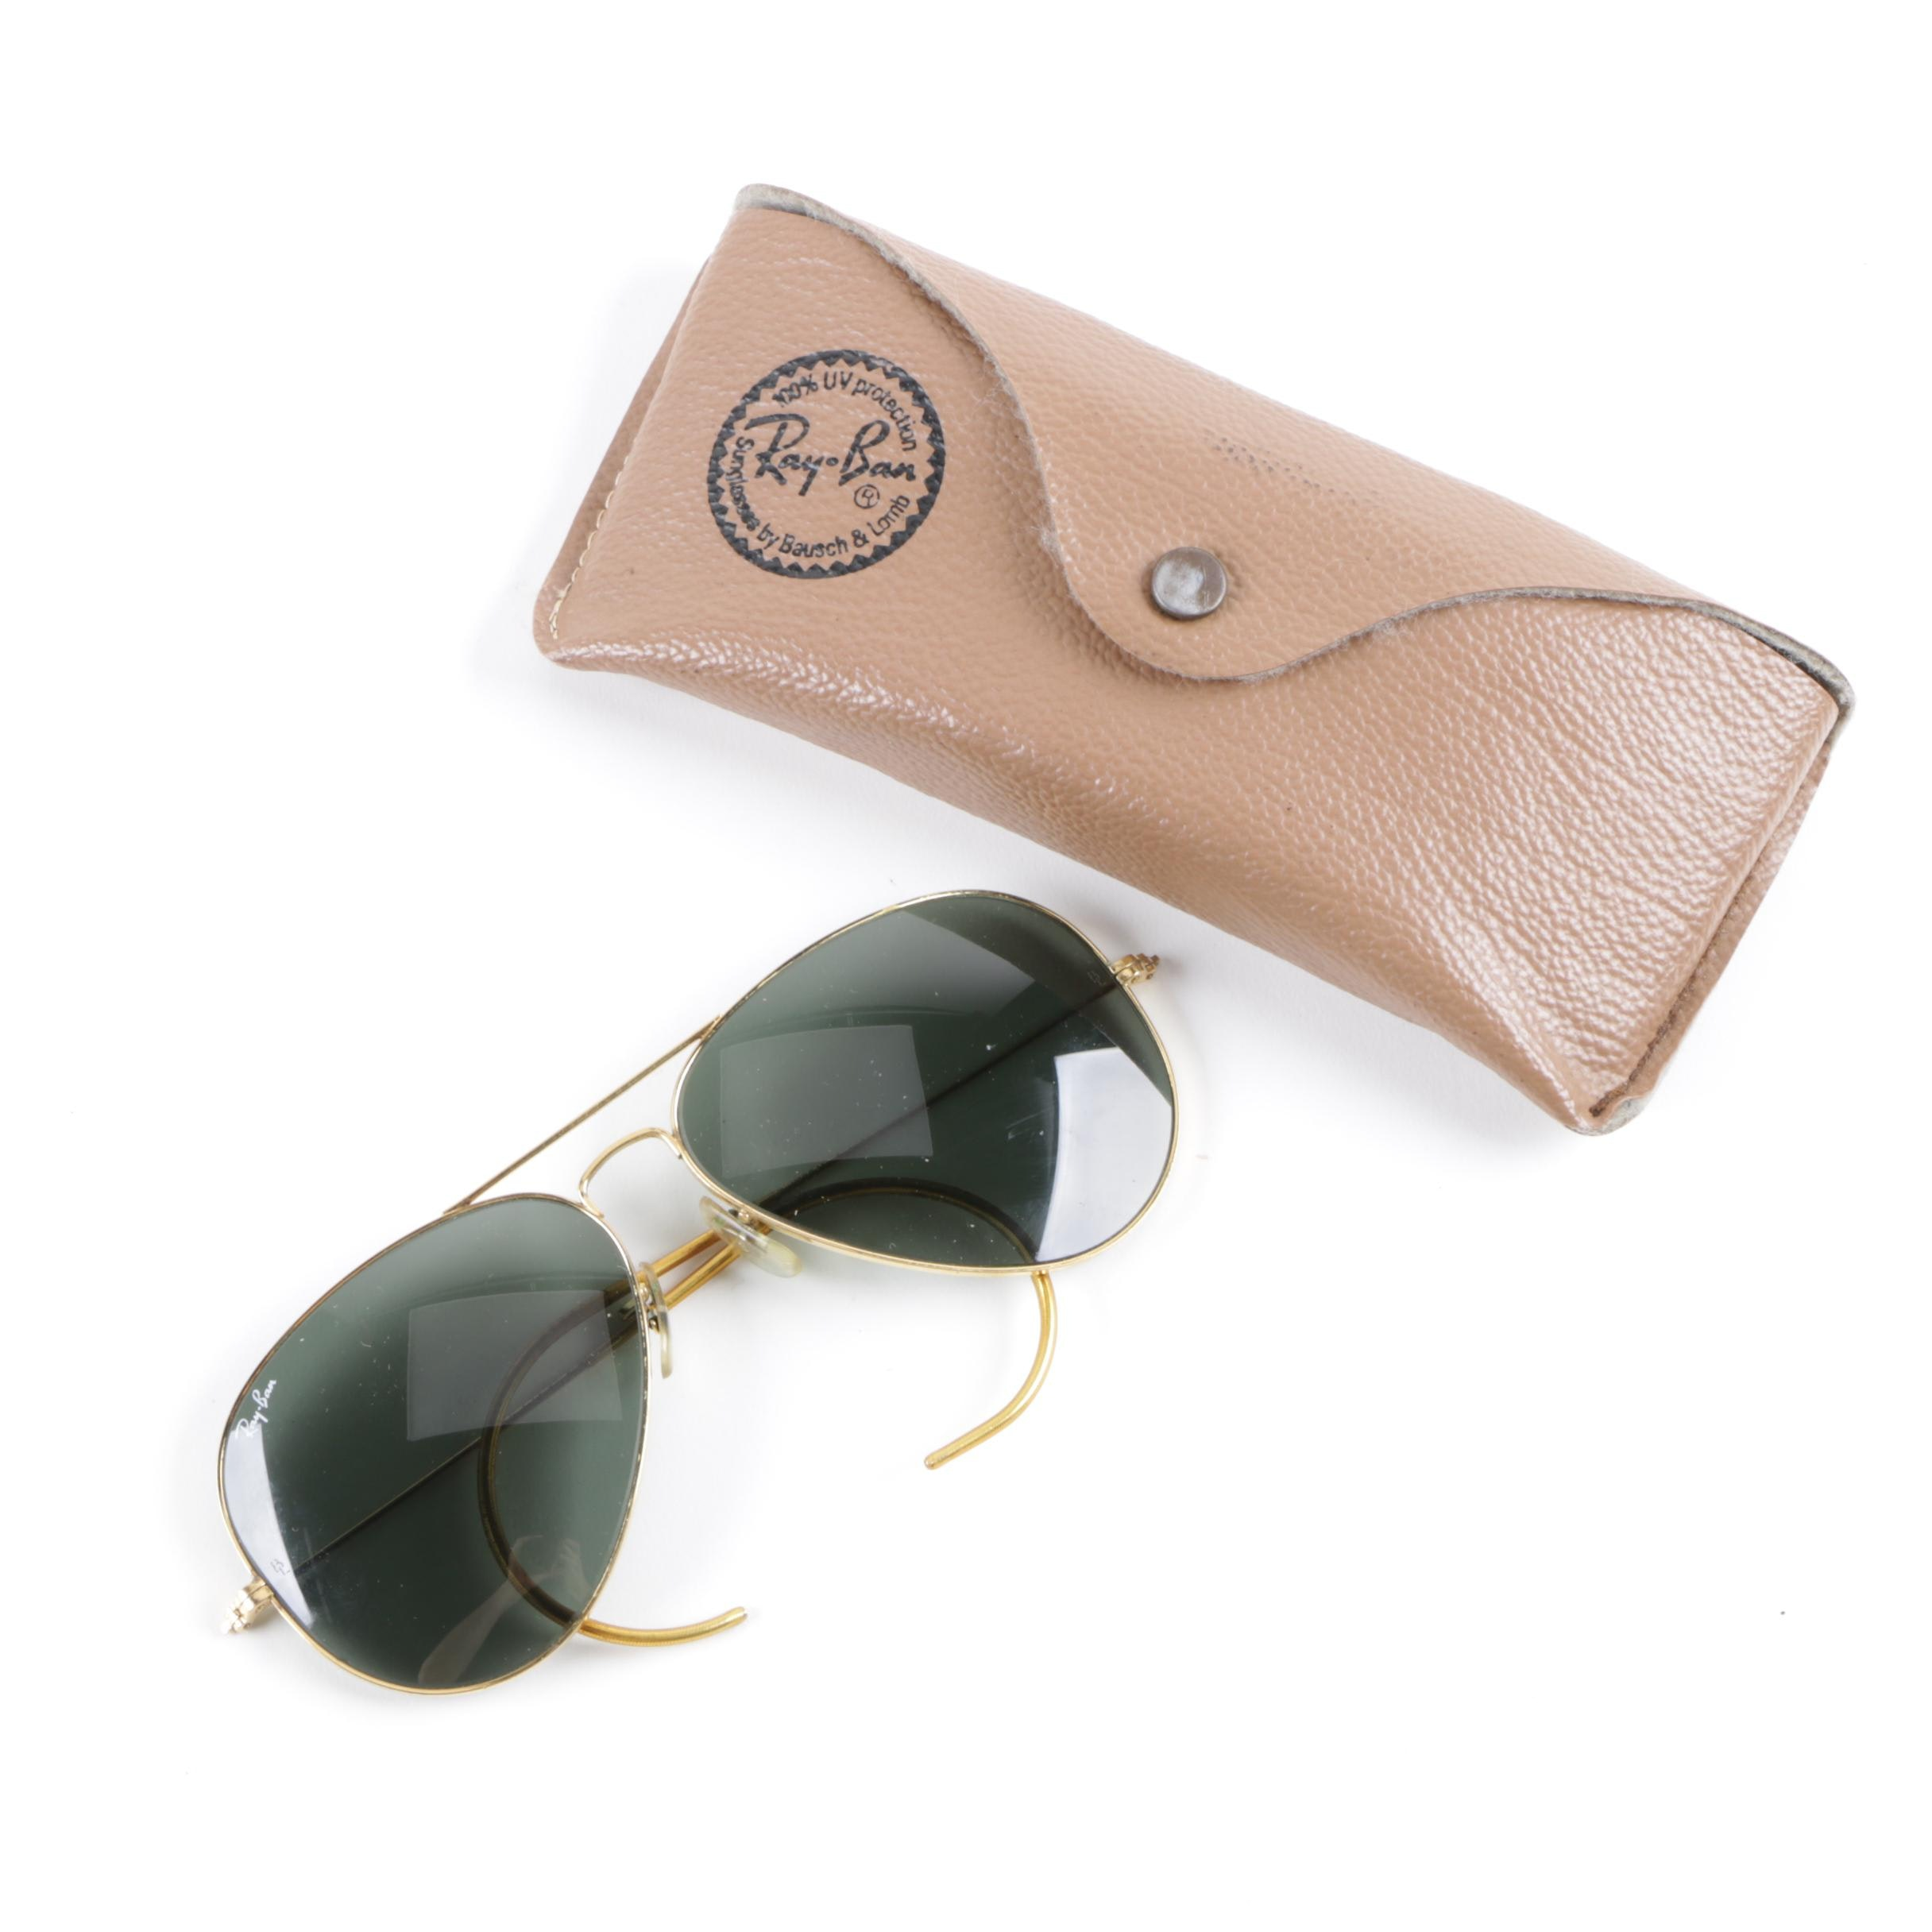 1970s Vintage Bausch and Lomb Ray-Ban Aviator Sunglasses with Original Documents